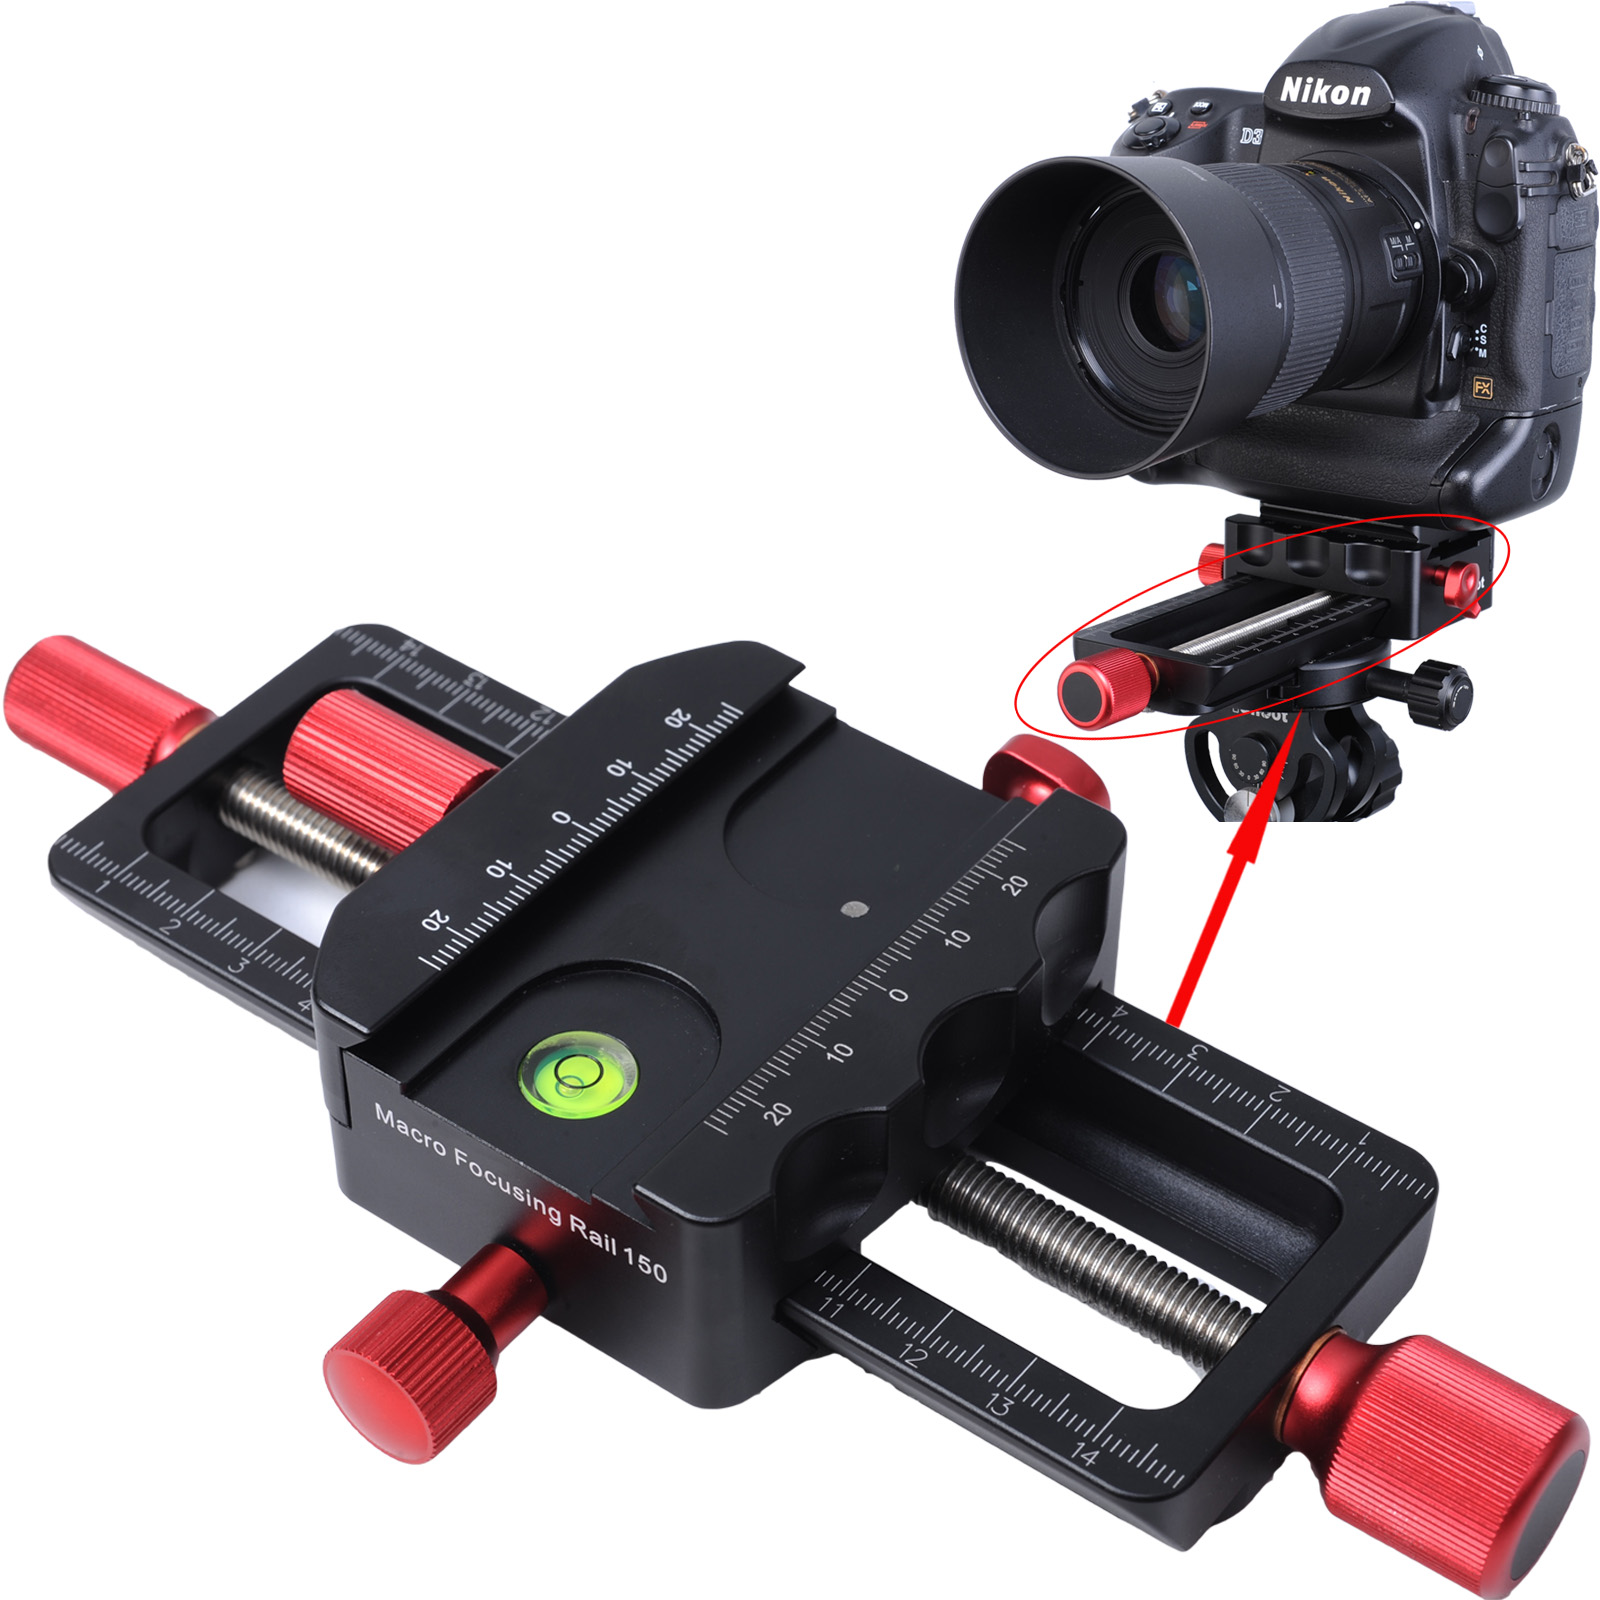 150mm Macro Focusing Rail Slider Close-up Shooting Head With Arca-Swiss Fit Clamp Quick Release Plate for Tripod Ballhead 160mm aluminum macro focusing rail slider close up shooting tripod head for canon for nikon for sony a7 a7sii a6500 dslr camera